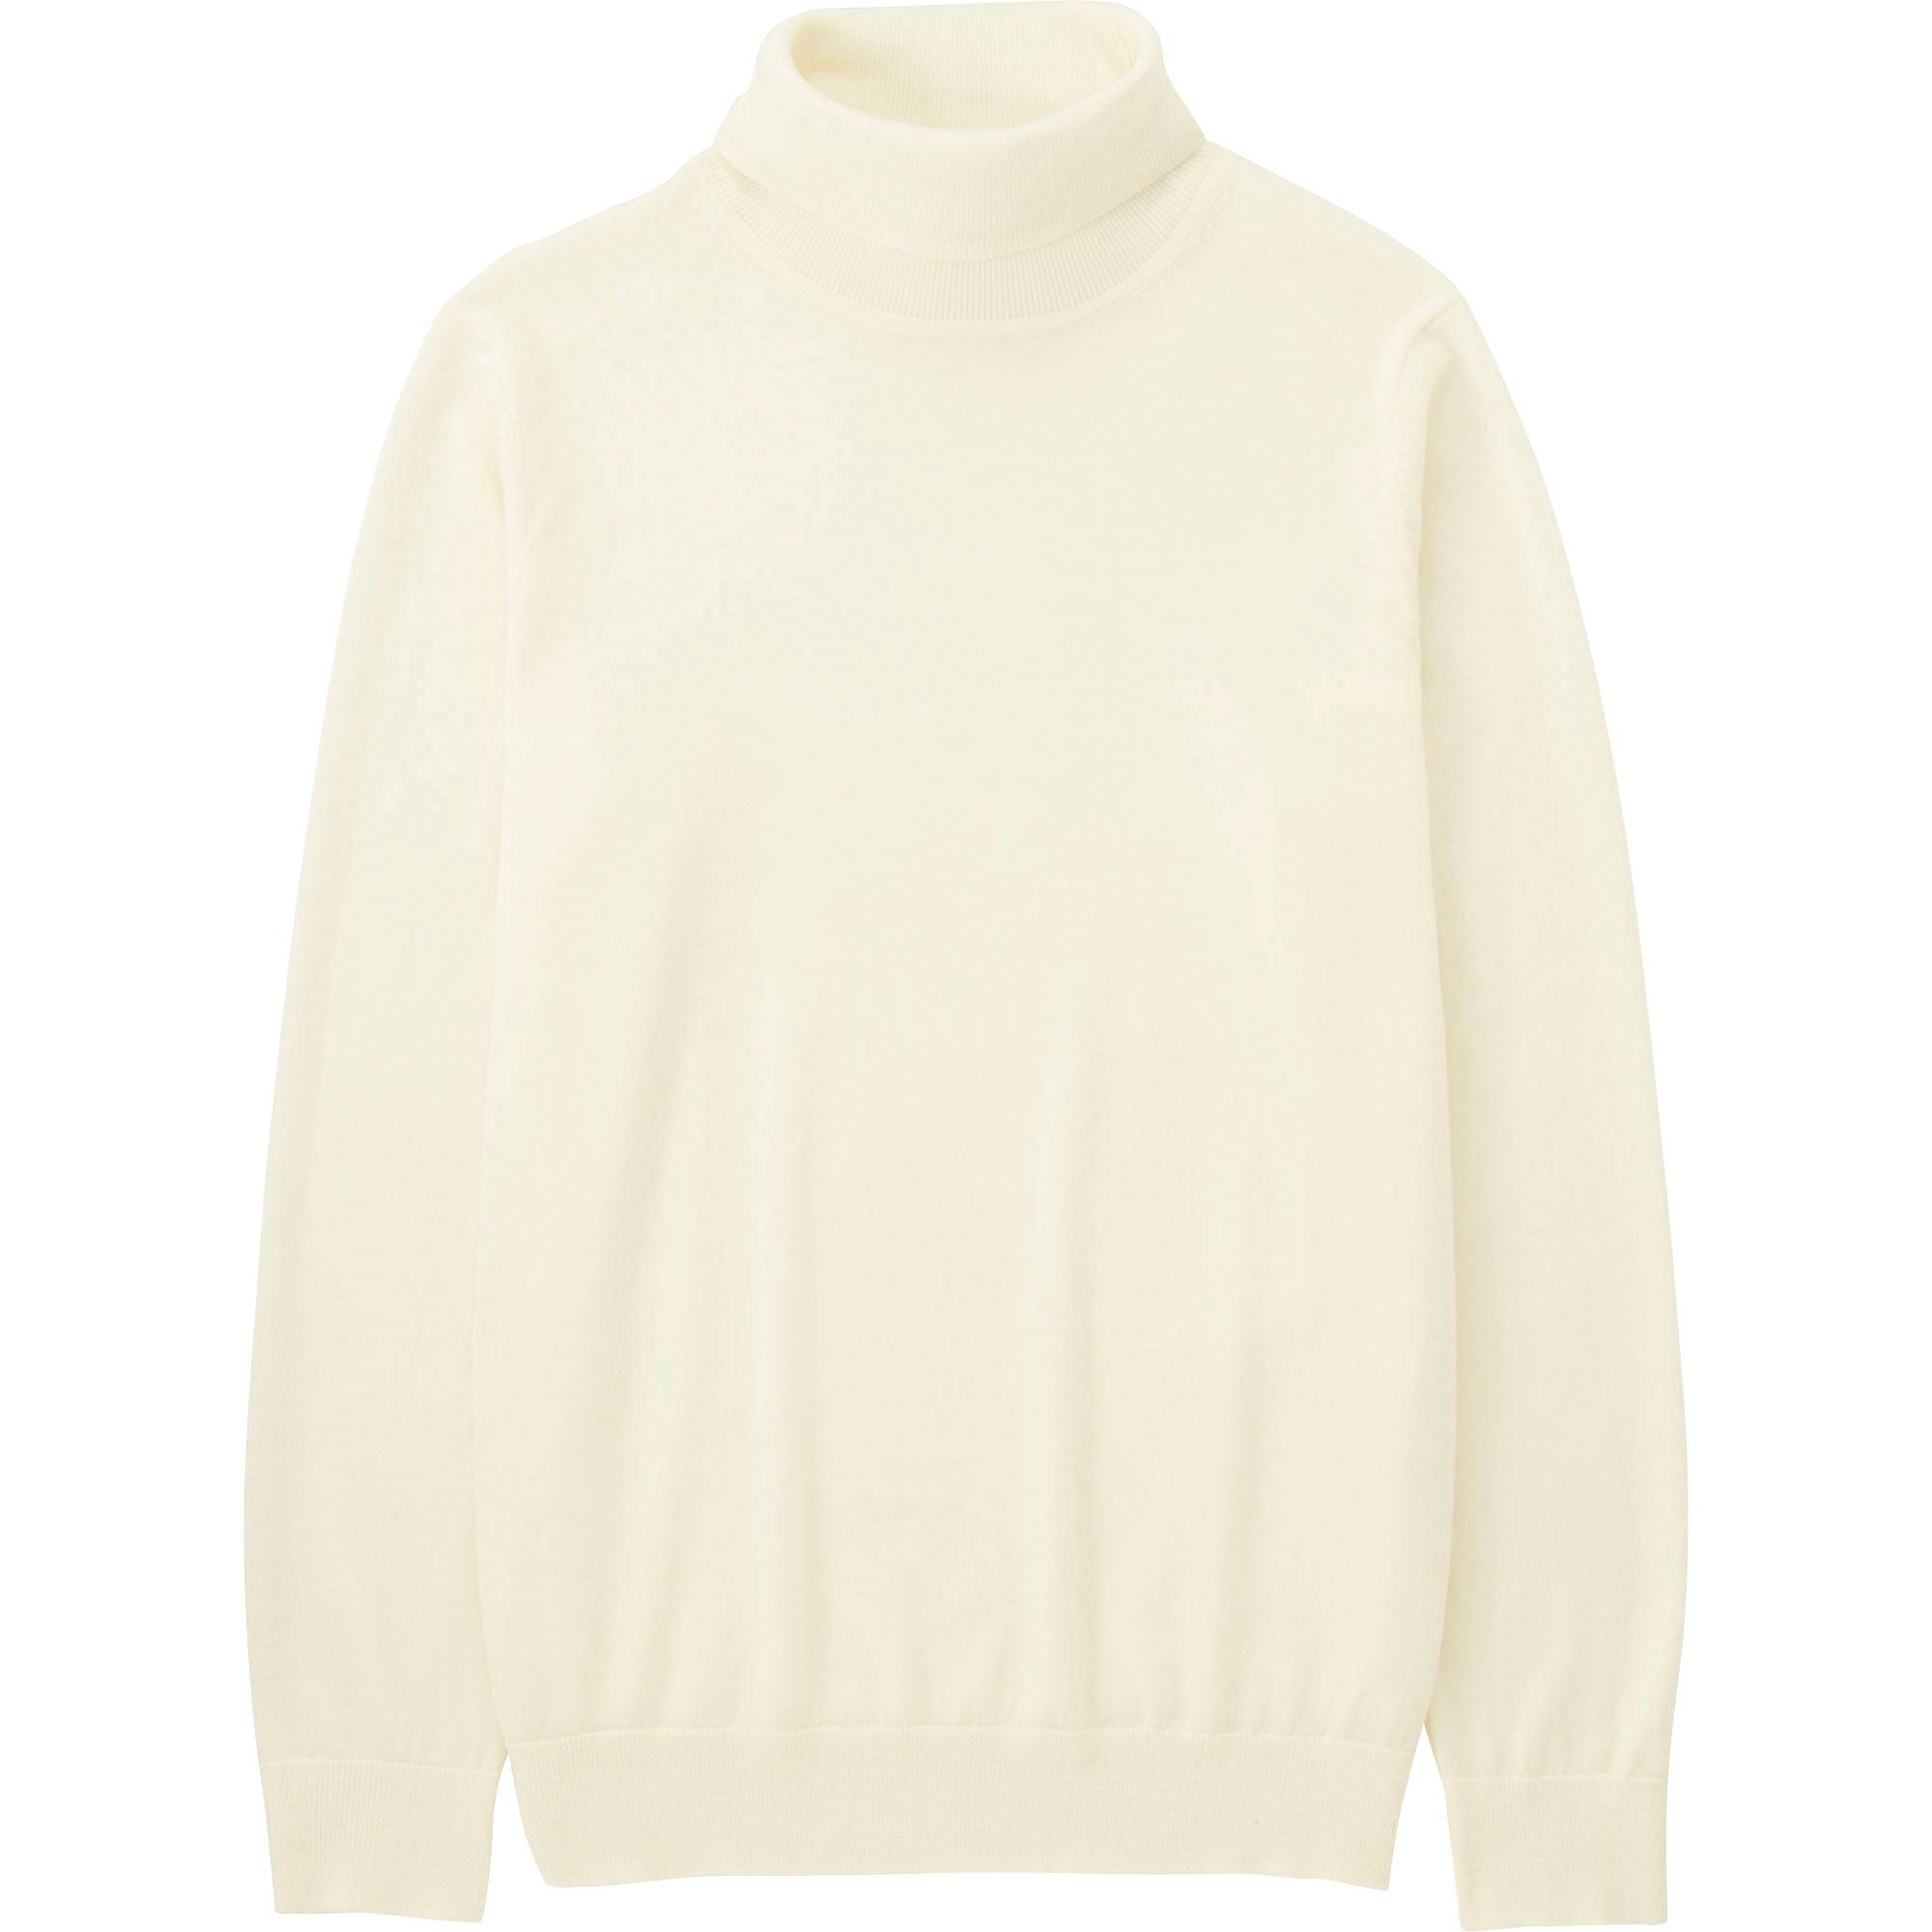 MEN EXTRA FINE MERINO TURTLENECK SWEATER | UNIQLO US